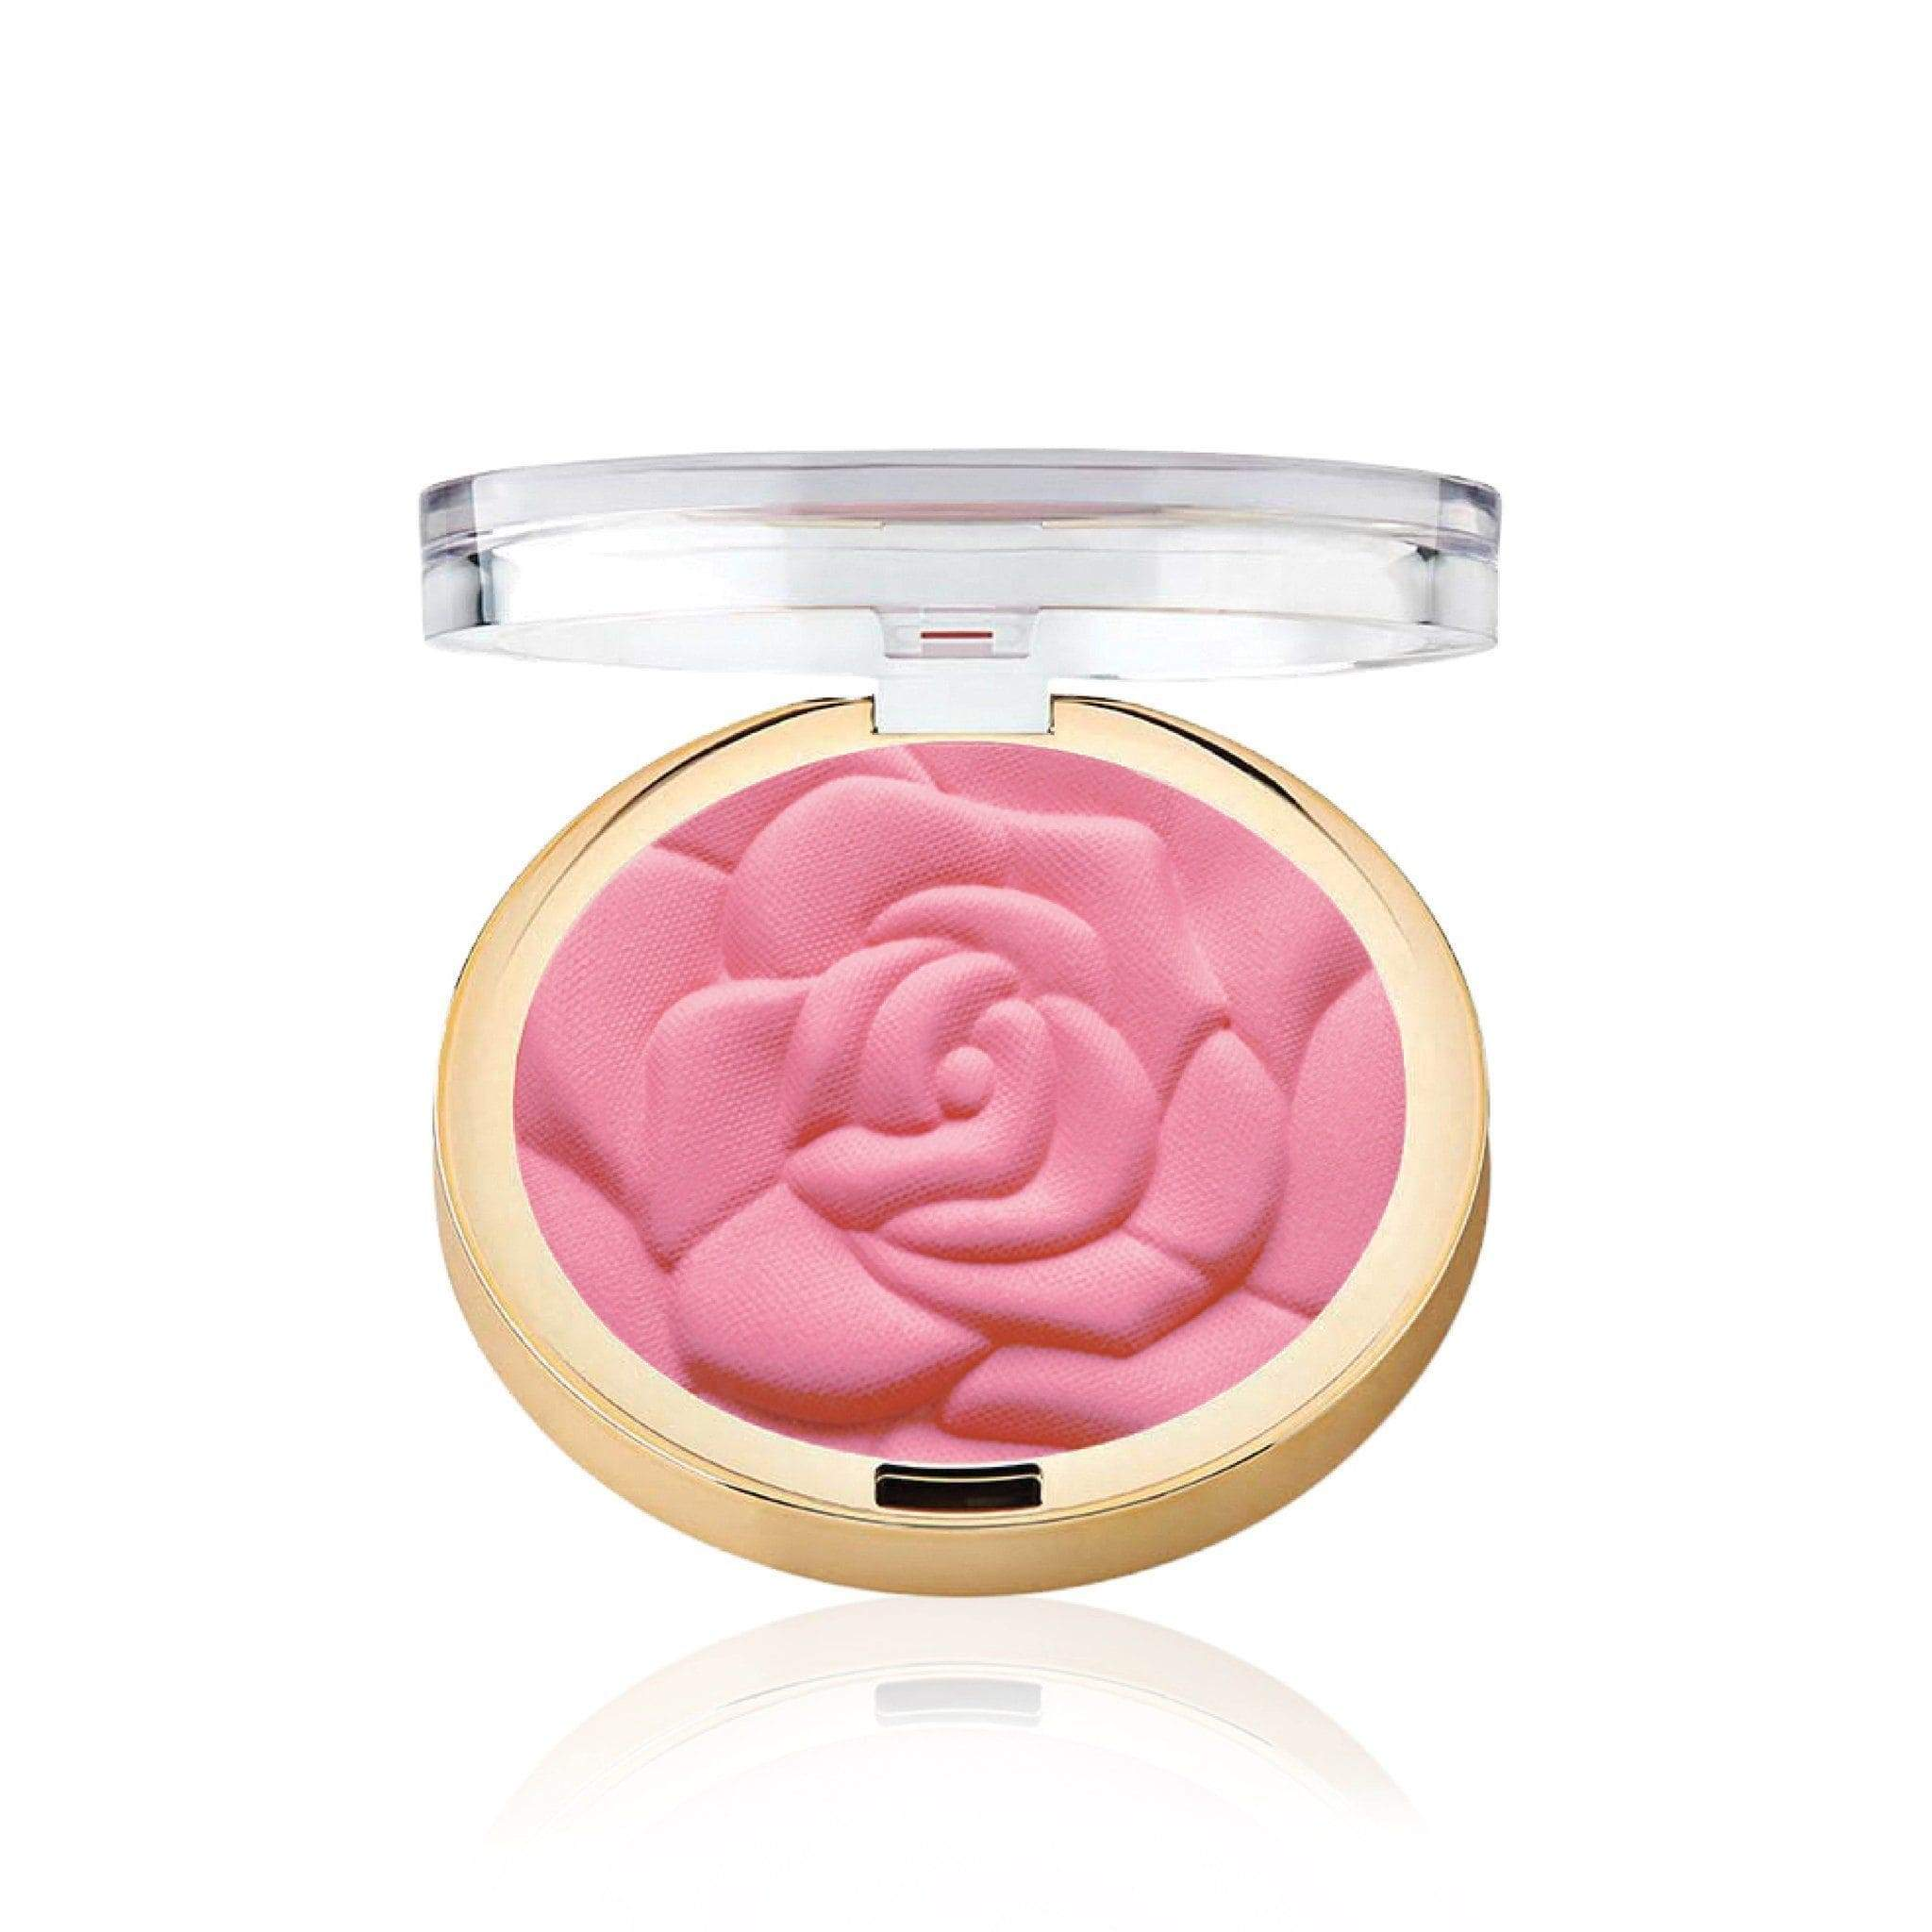 Milani Rose Powder Blush - Tea Rose, Blush, London Loves Beauty